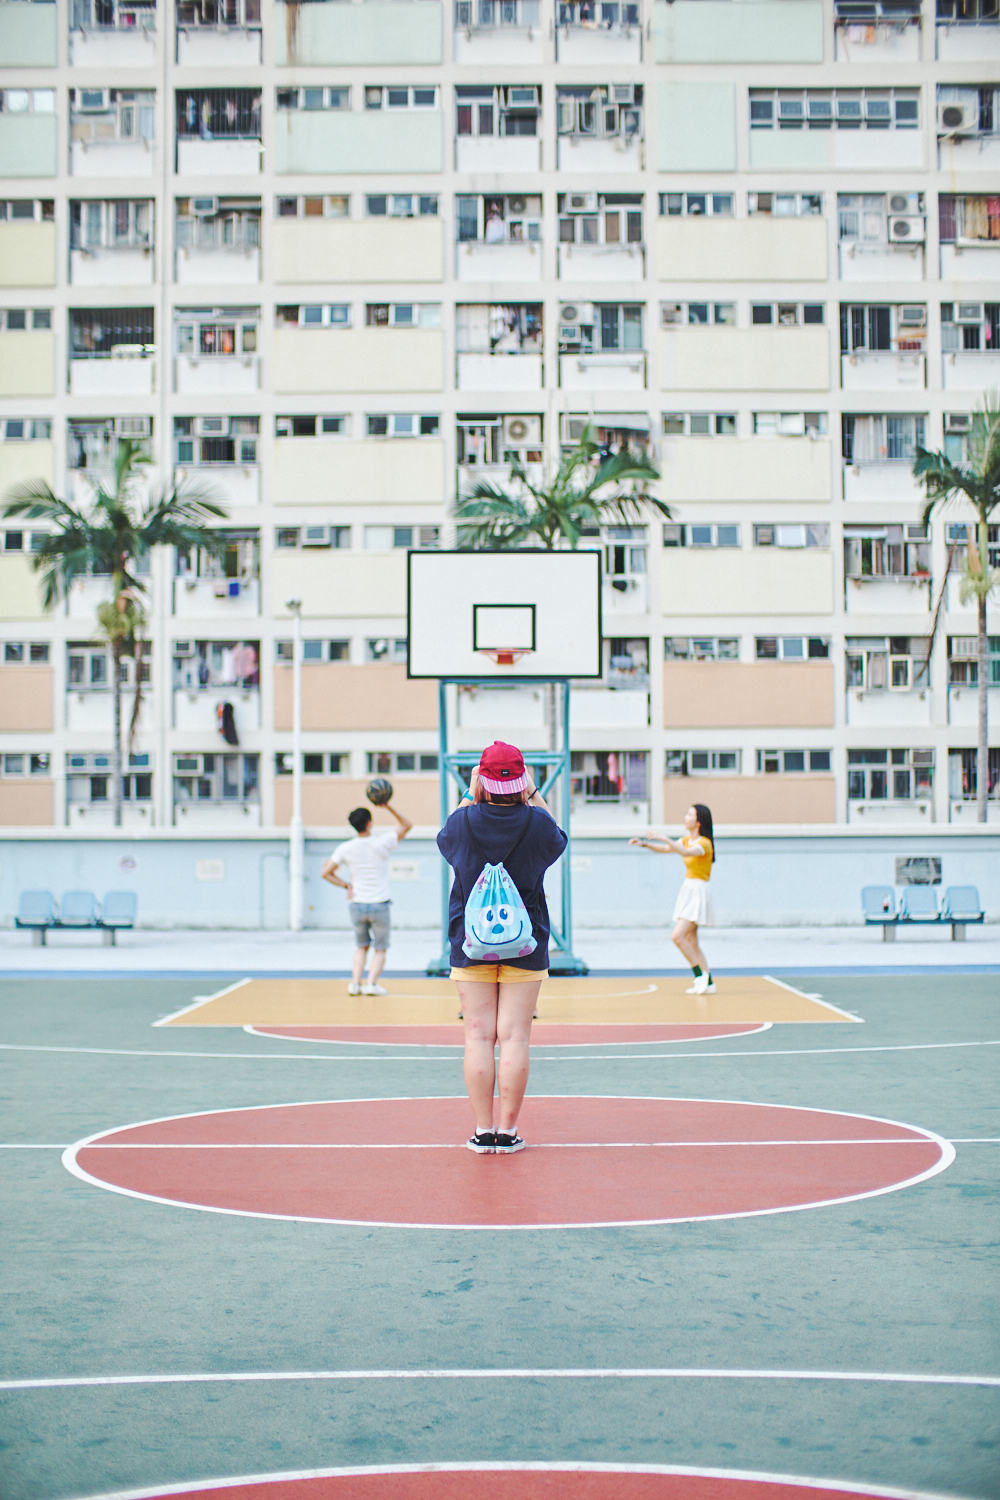 Travel Photographer | Choi Hung Estate Kowloon Hong Kong